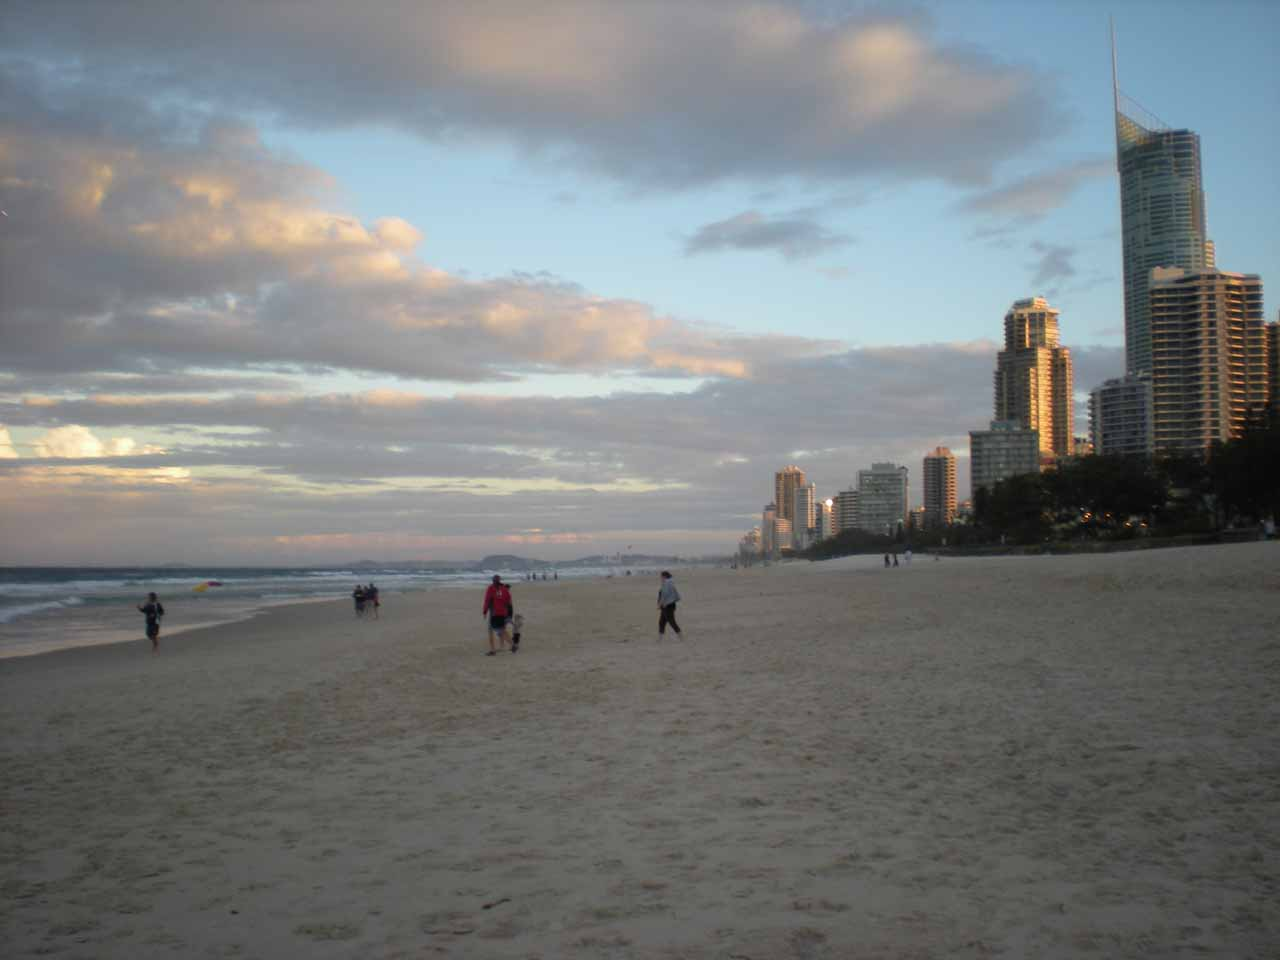 To the south of Brisbane was Surfers Paradise, which strangely reminded Julie and I of South Beach in Miami